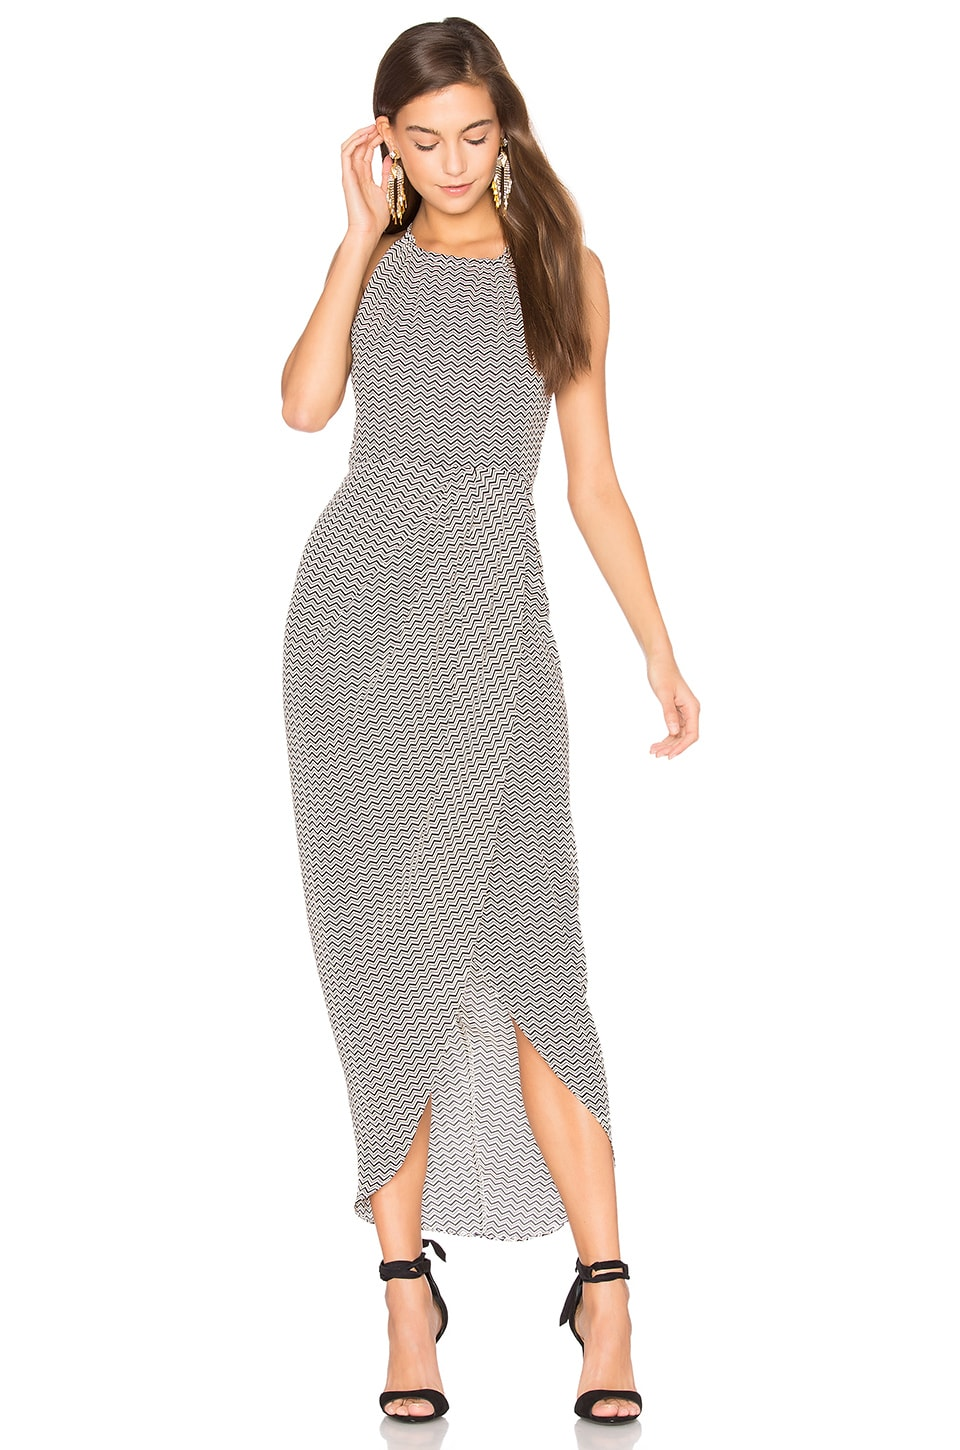 Etienne High Neck Ruched Maxi Dress by Shona Joy